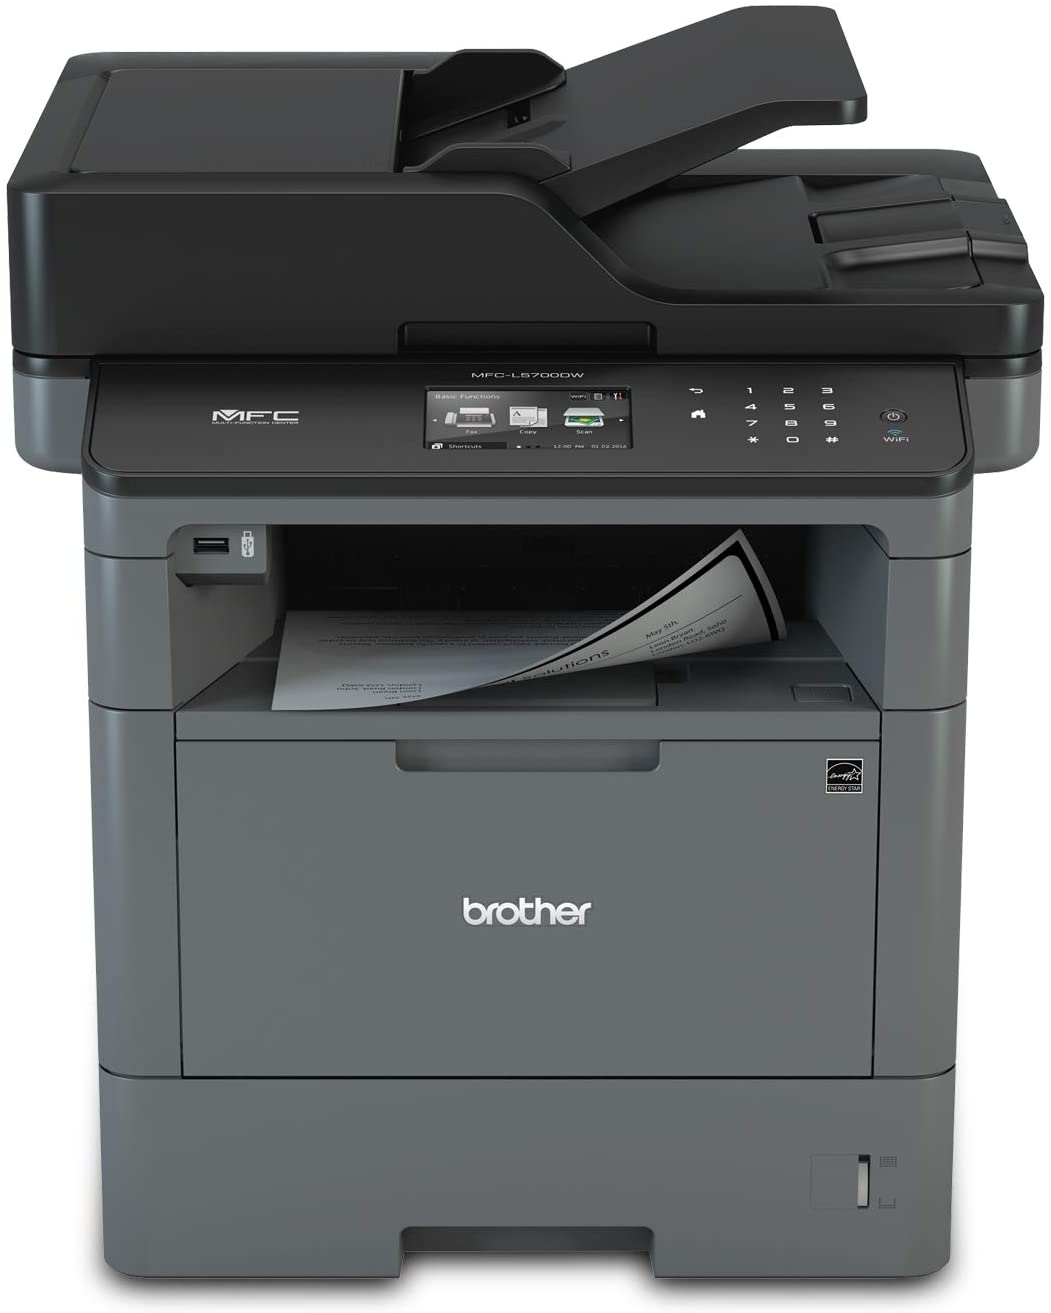 Brother MFC-L5700DW Dual Tray Printer